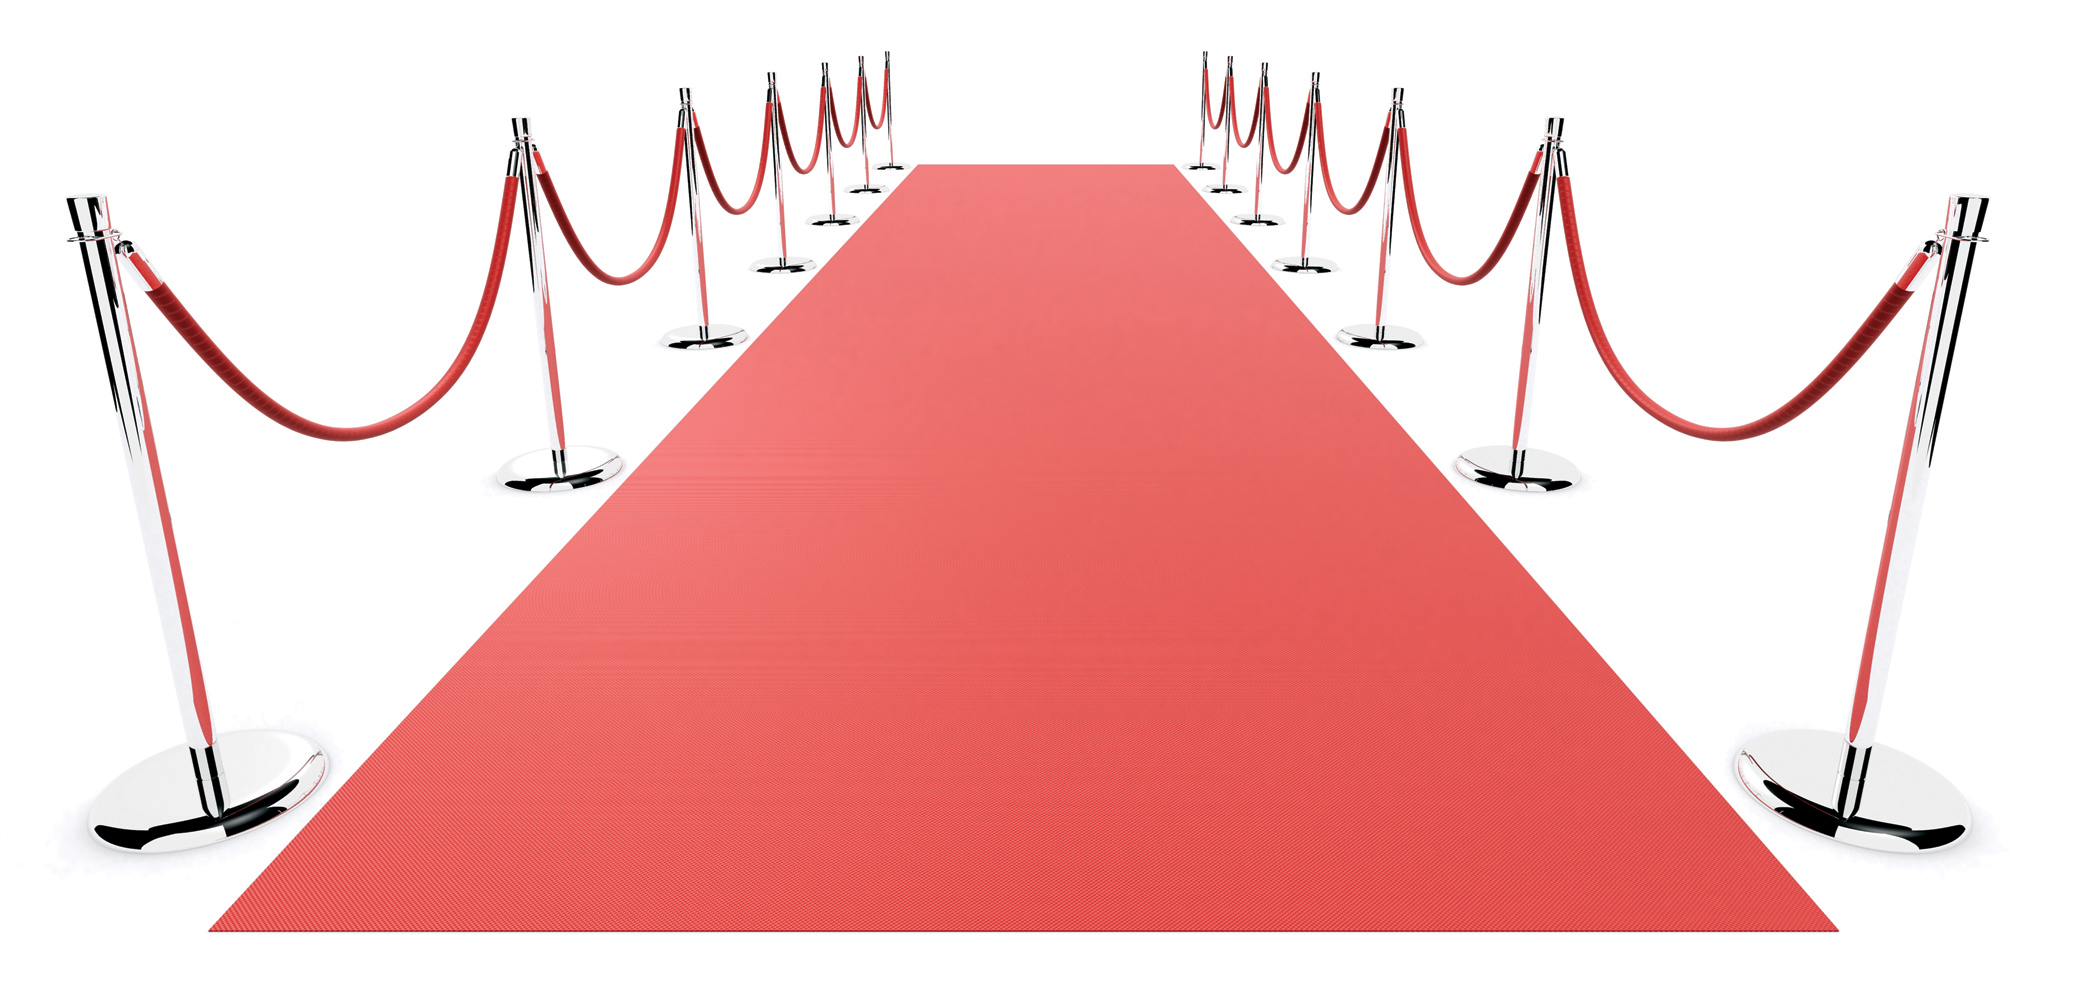 RED CARPET FREE Wallpapers Background images   hippowallpaperscom 2100x988